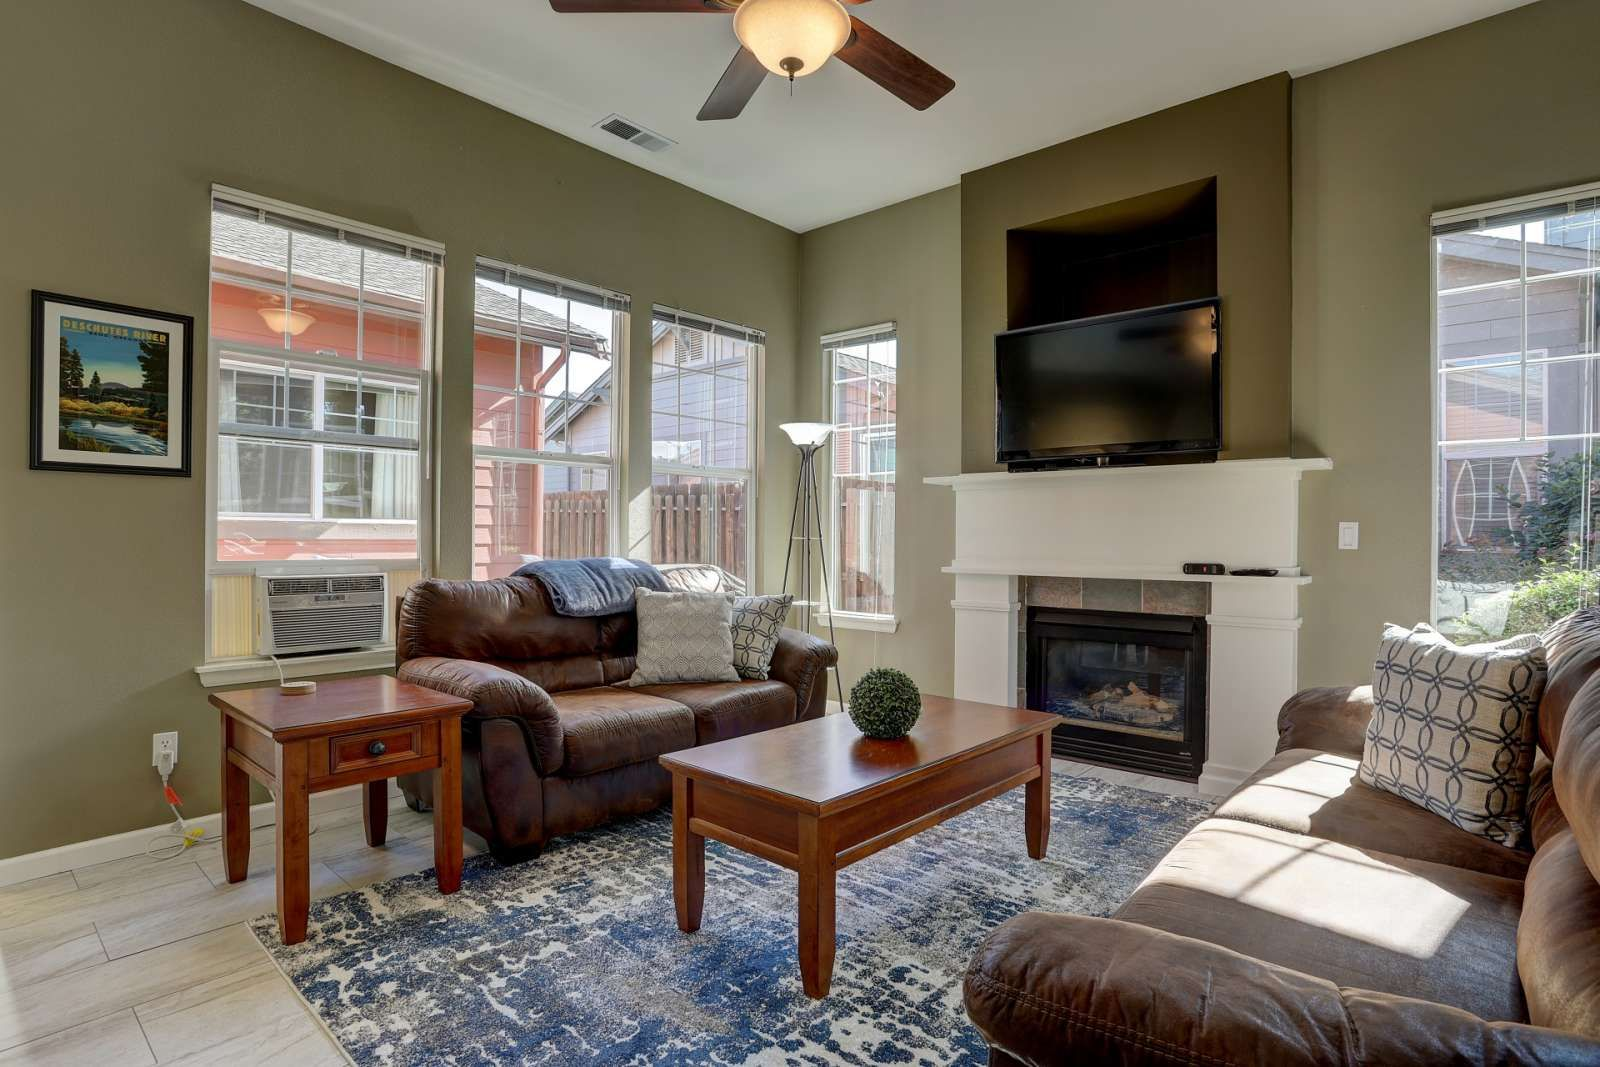 Bend Vacation Rental 20 Off 3rd Night Old Mill Retreat Short Walk To Dwntwn Old Mill Fireplac Counter Seating 3 Living Rooms Vacation Rental